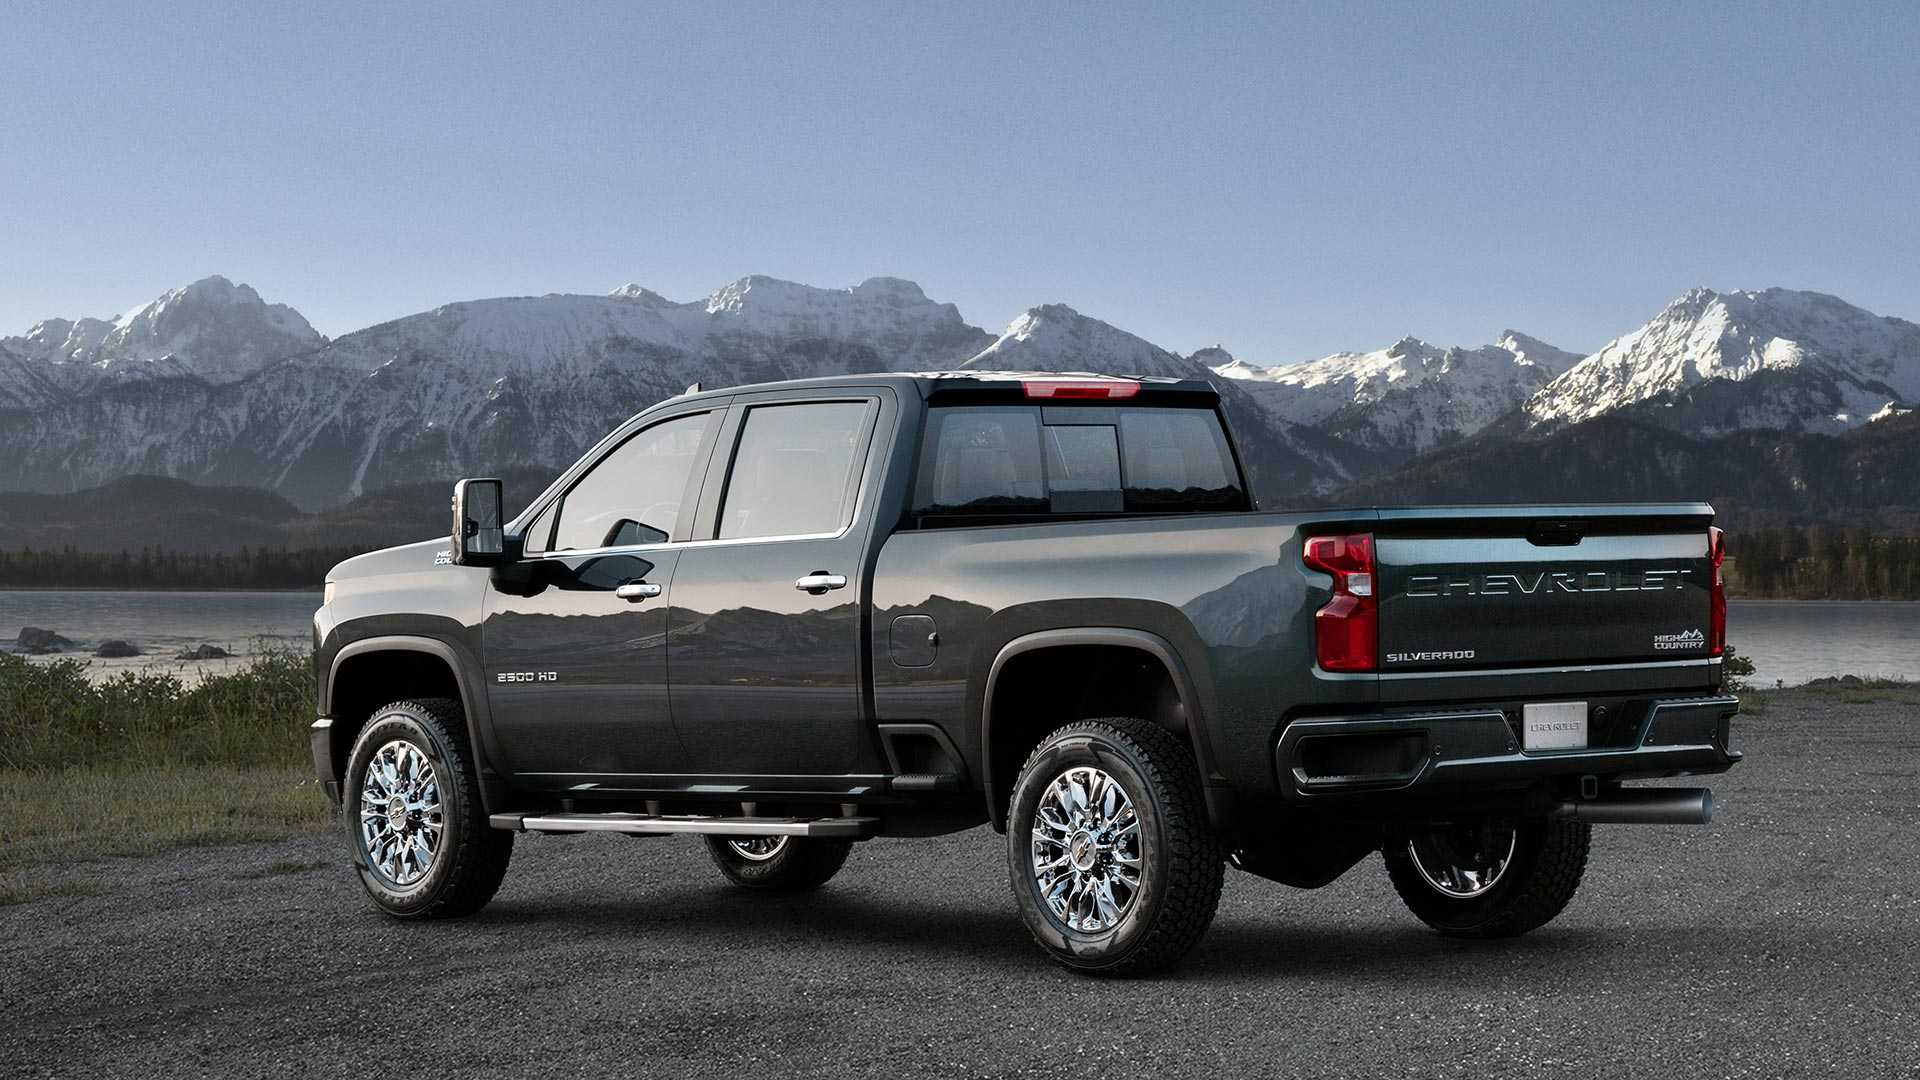 2020 Chevrolet Silverado HD Looks Bling-Bling In High Country Flavor - autoevolution